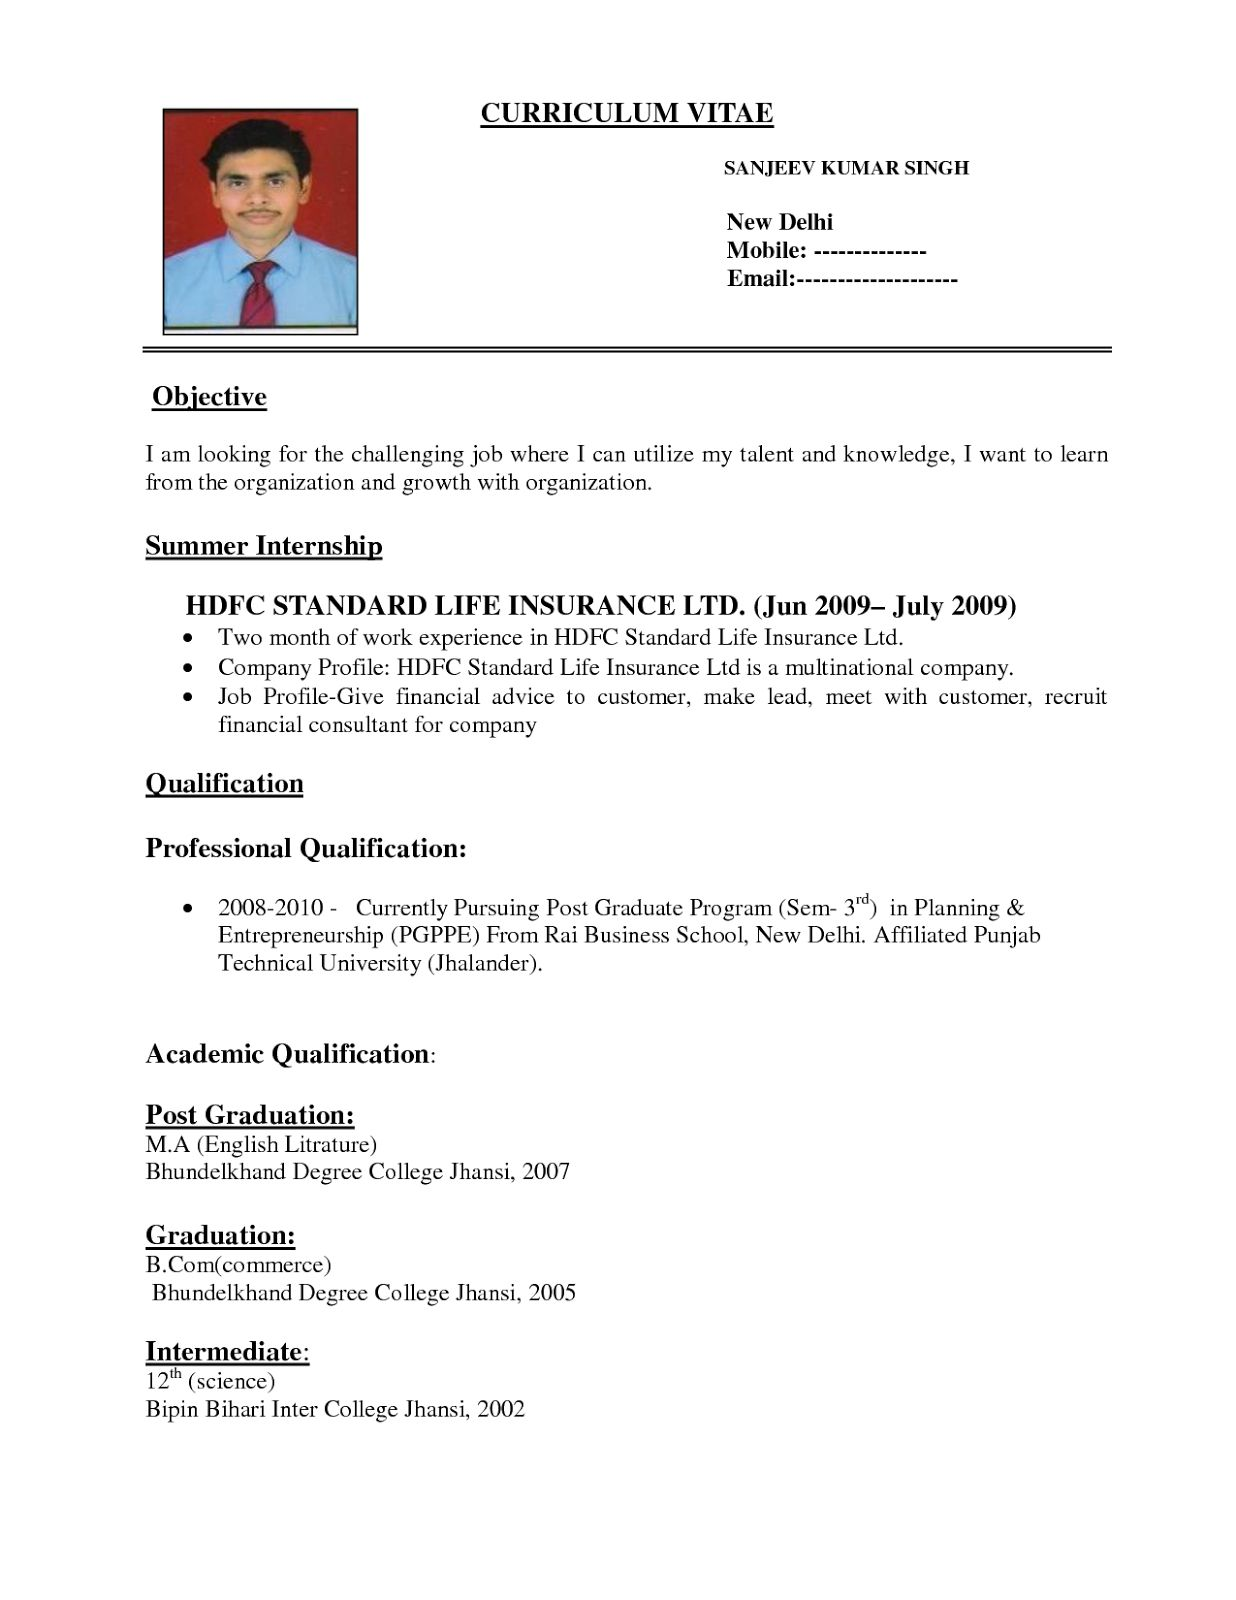 Resume Format Pdf (With images) Sample resume format